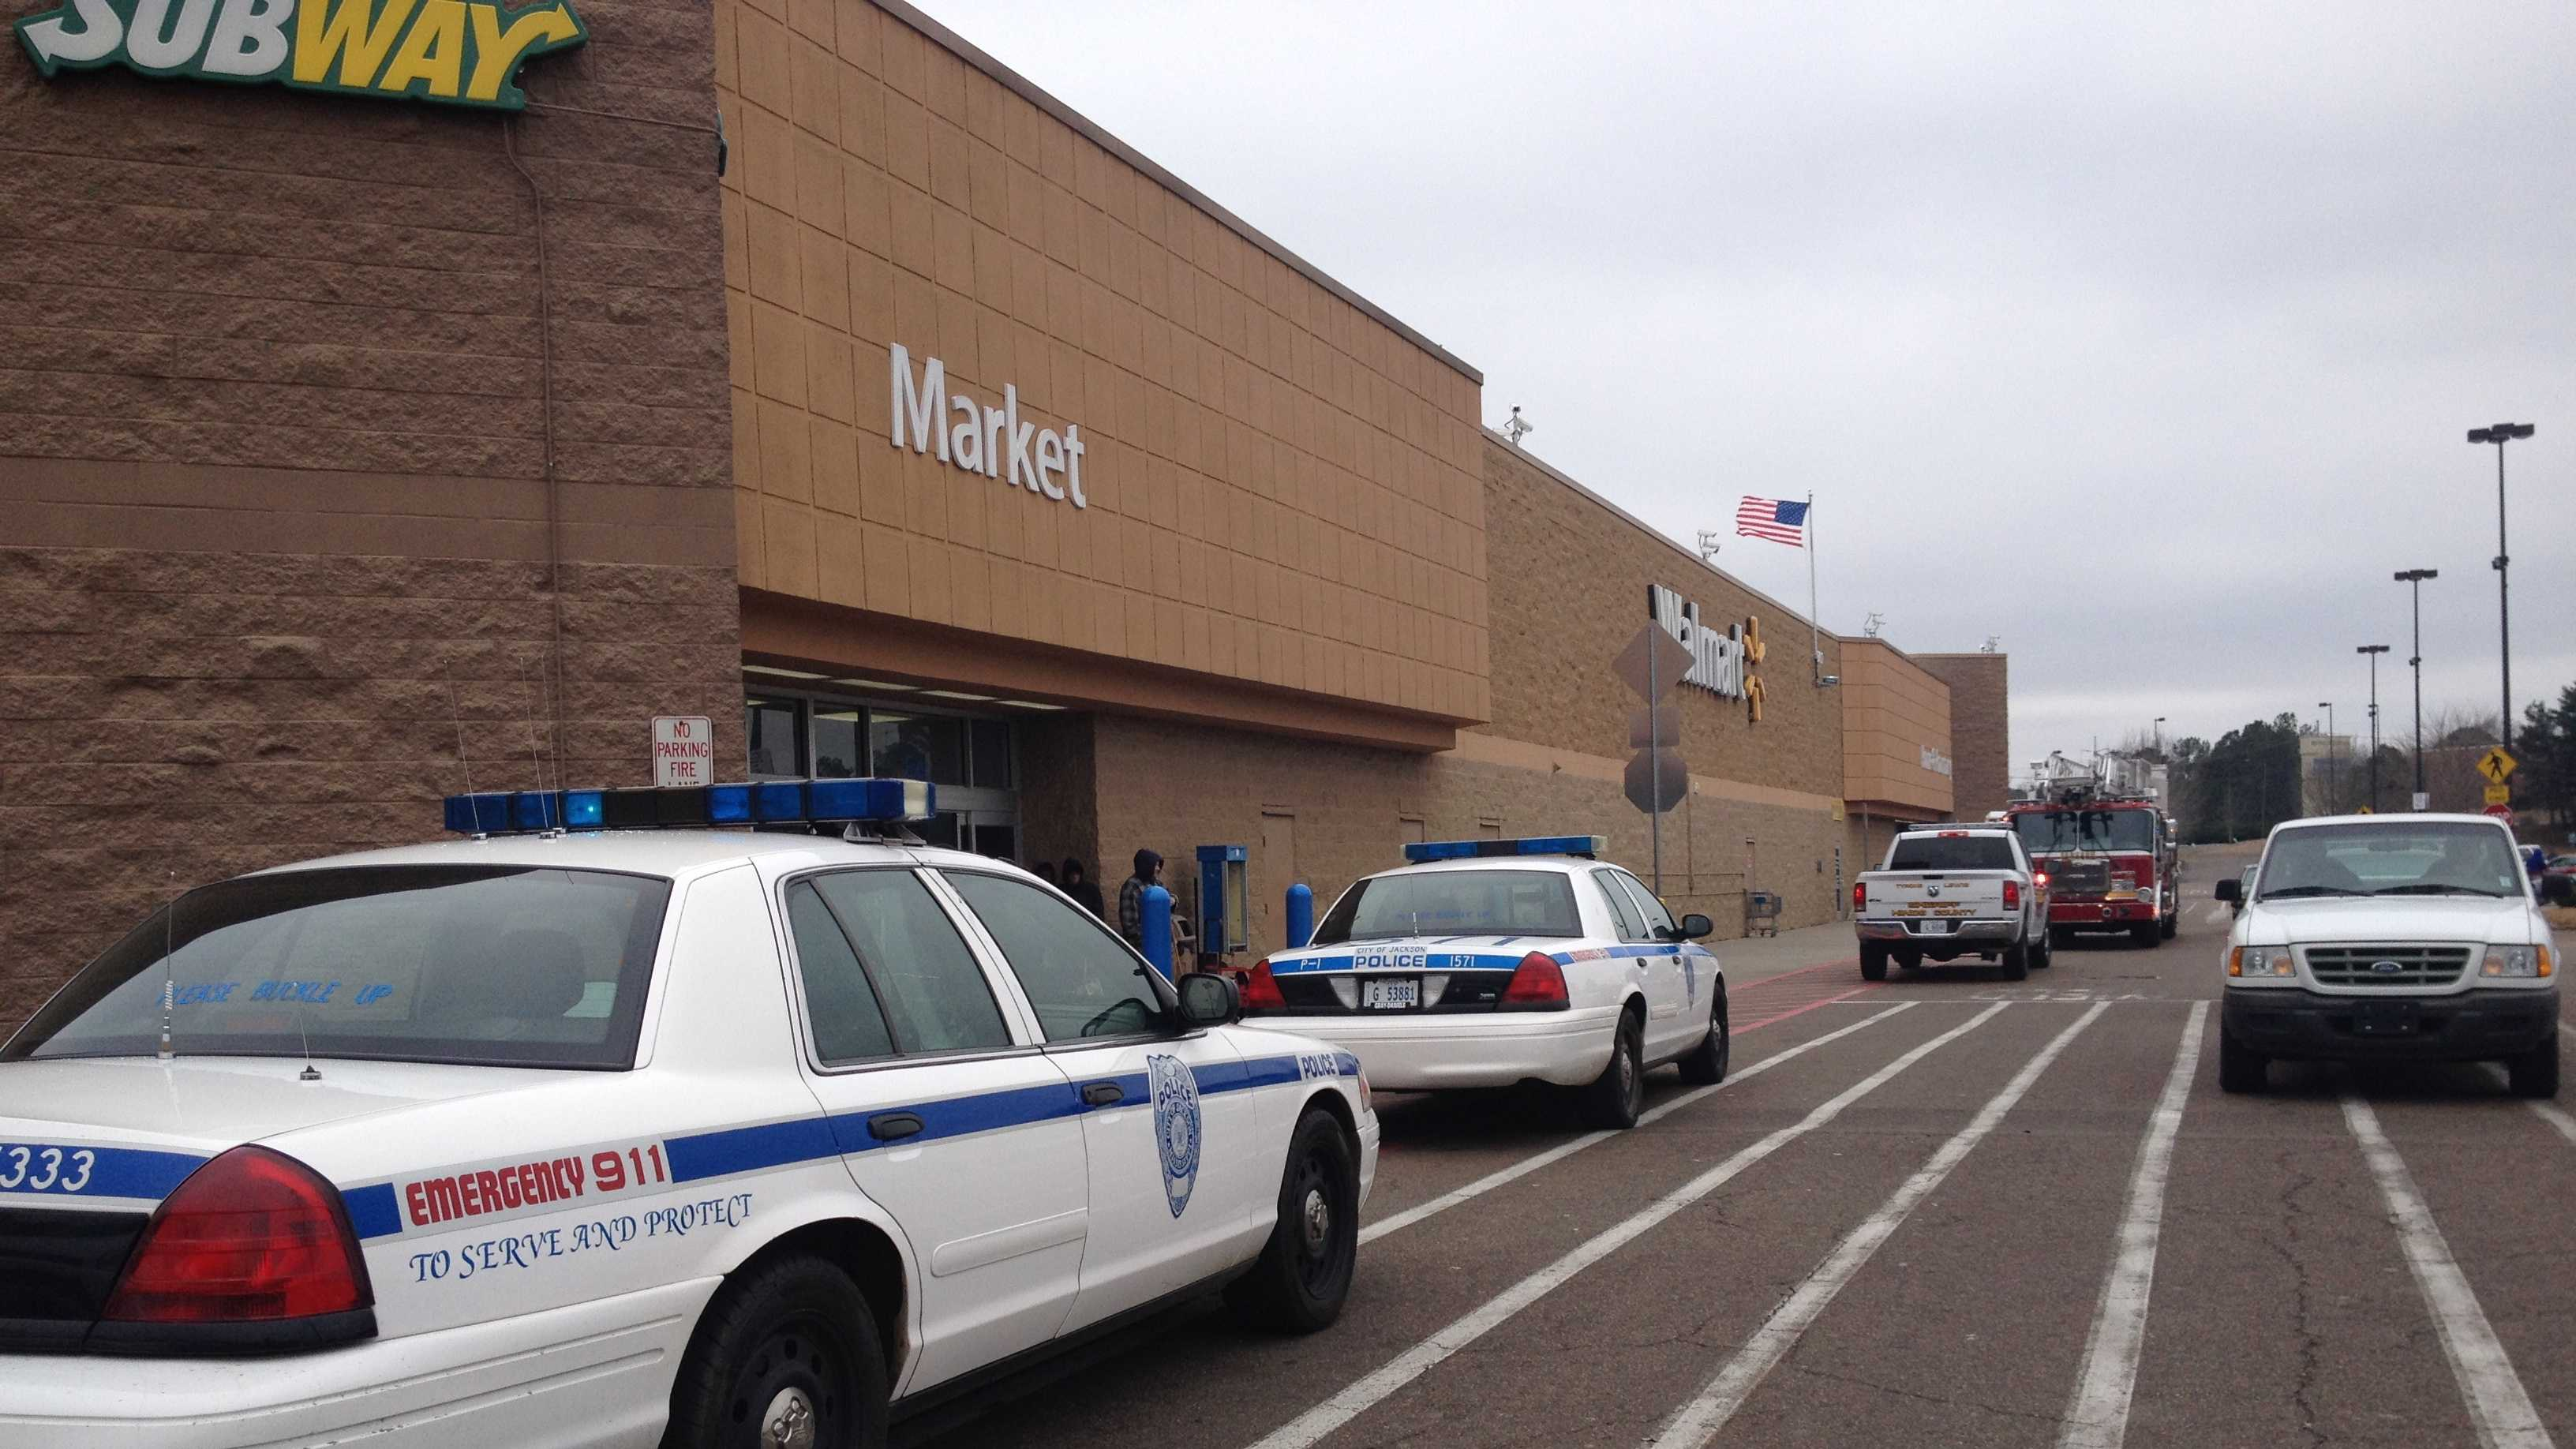 Walmart flare gun incident